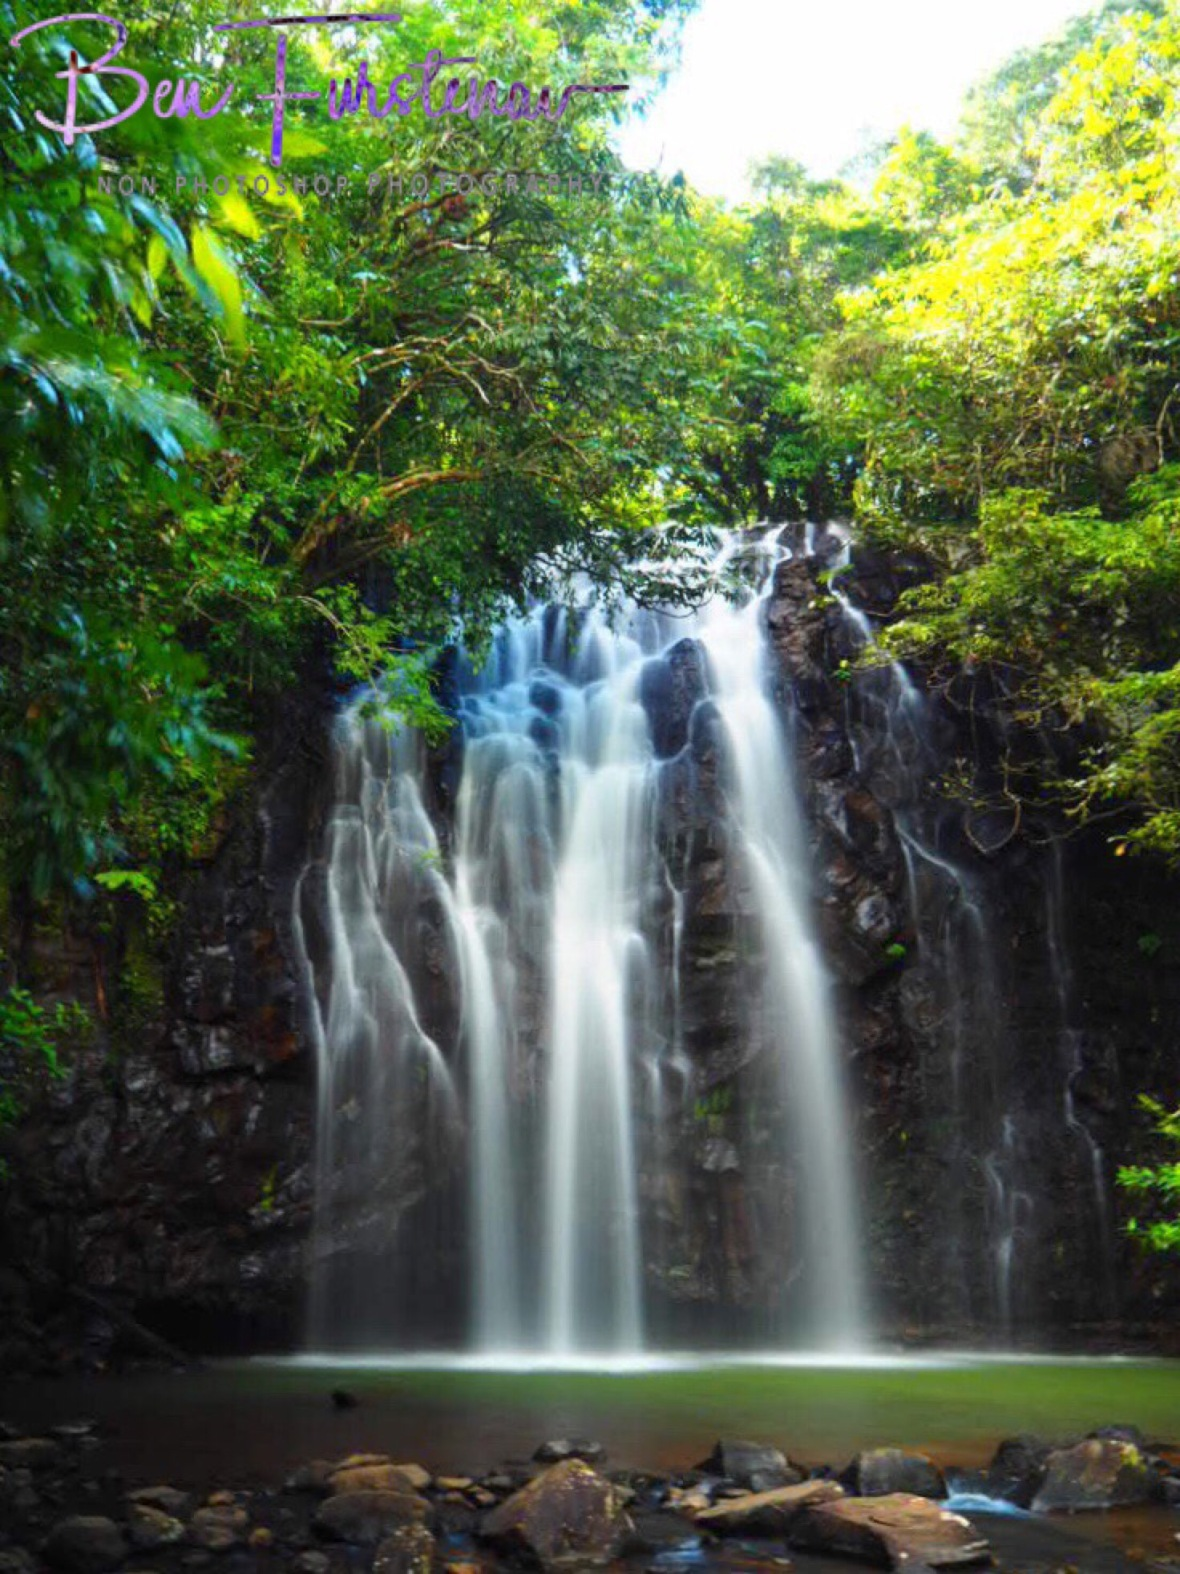 Spectacular drop-off to a shallow pool, Atherton Tablelands, Far North Queensland, Australia